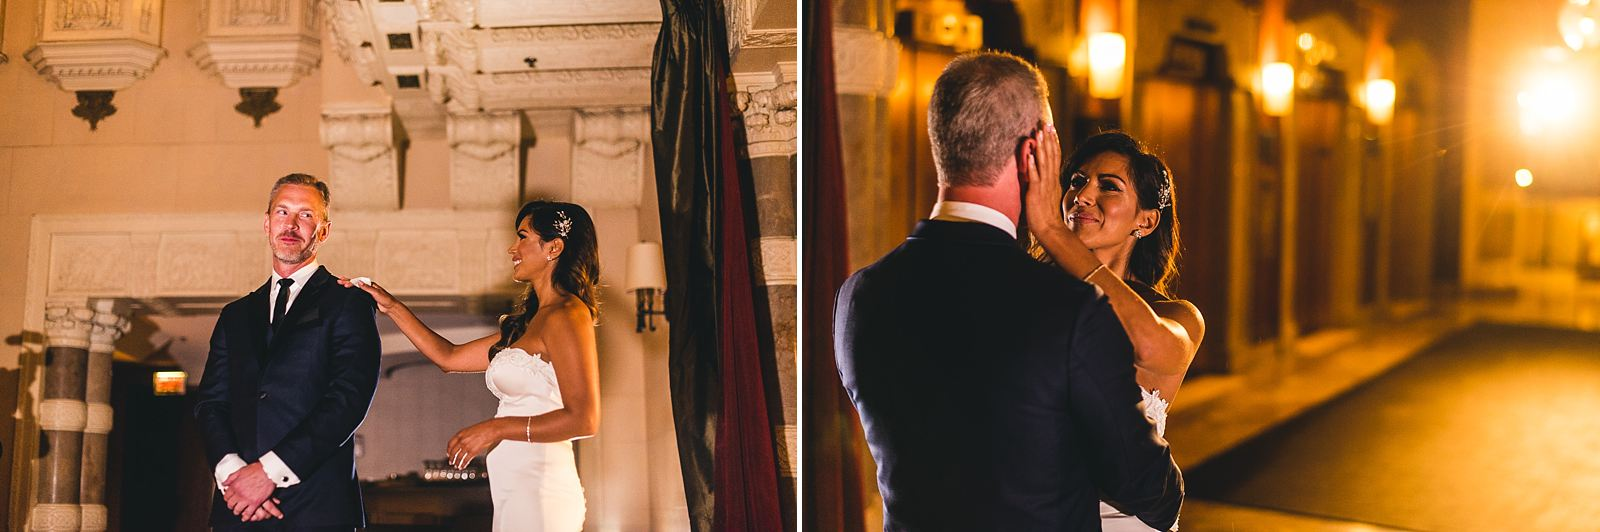 11 first look in chicago hotel - Intercontinental Chicago Hotel Wedding // Lili + Danny